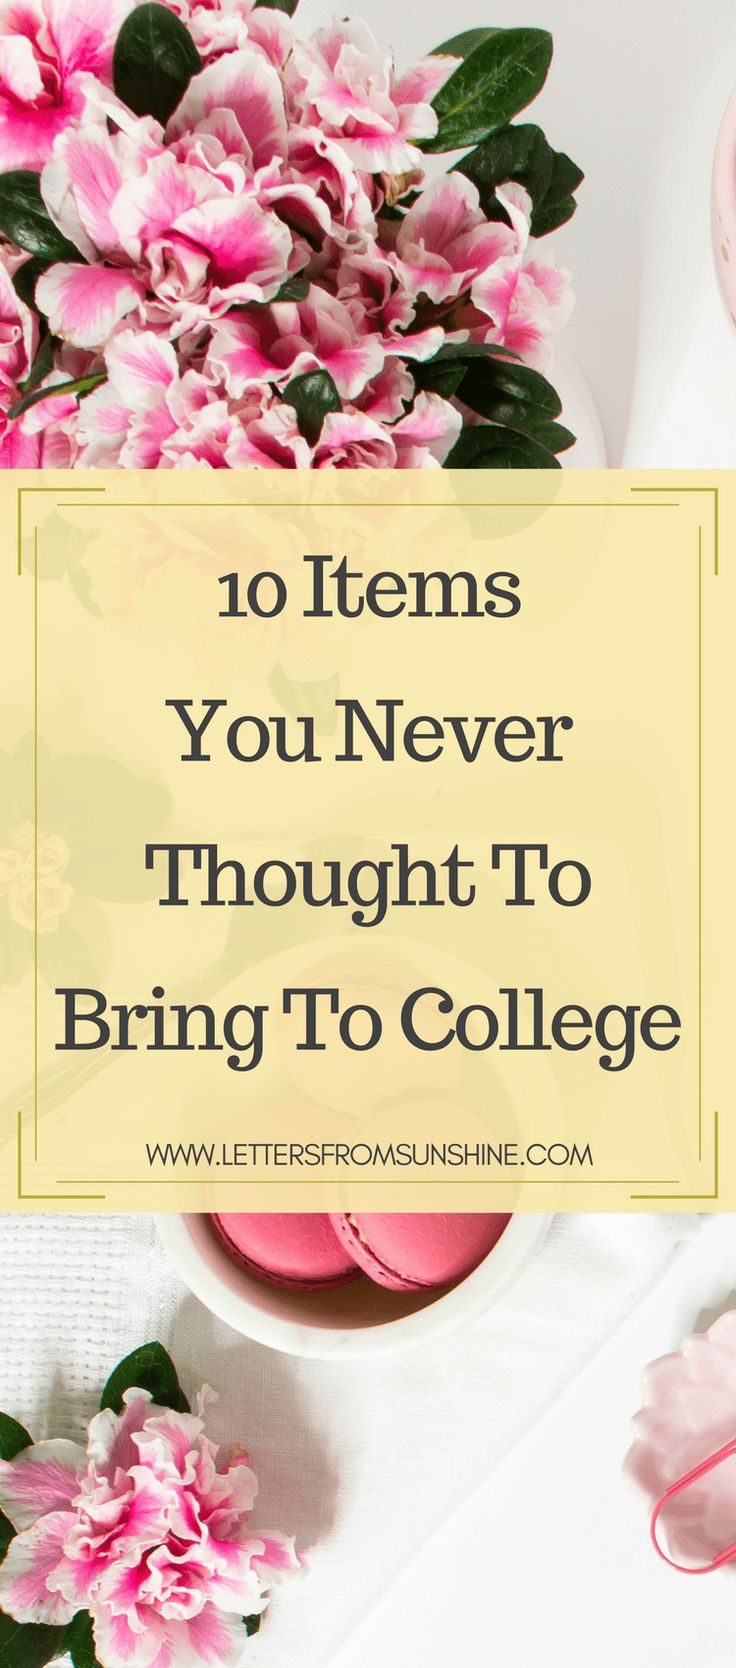 We've all seen the lists of what to bring and what not to bring to college, as well as the most forgotten items, but what about these items that you never even thought to add to your packing list? Check out Letters From Sunshine to read what these ten items are and their importance! www.lettersfromsunshine.com